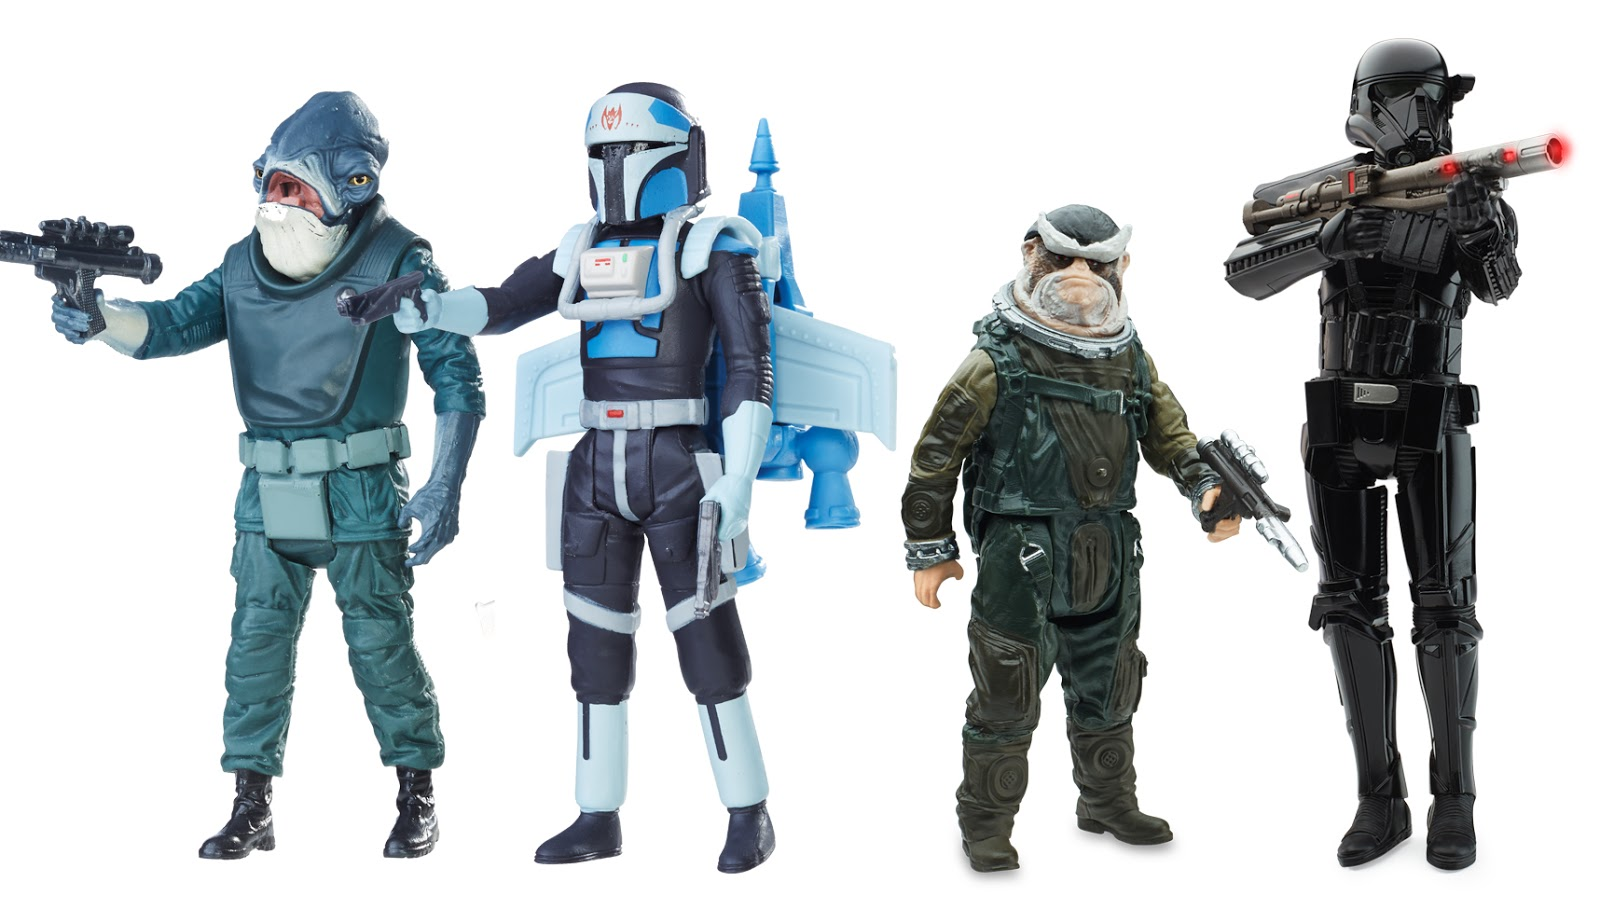 Star Wars Toys : Hasbro unveils images of new star wars toys the